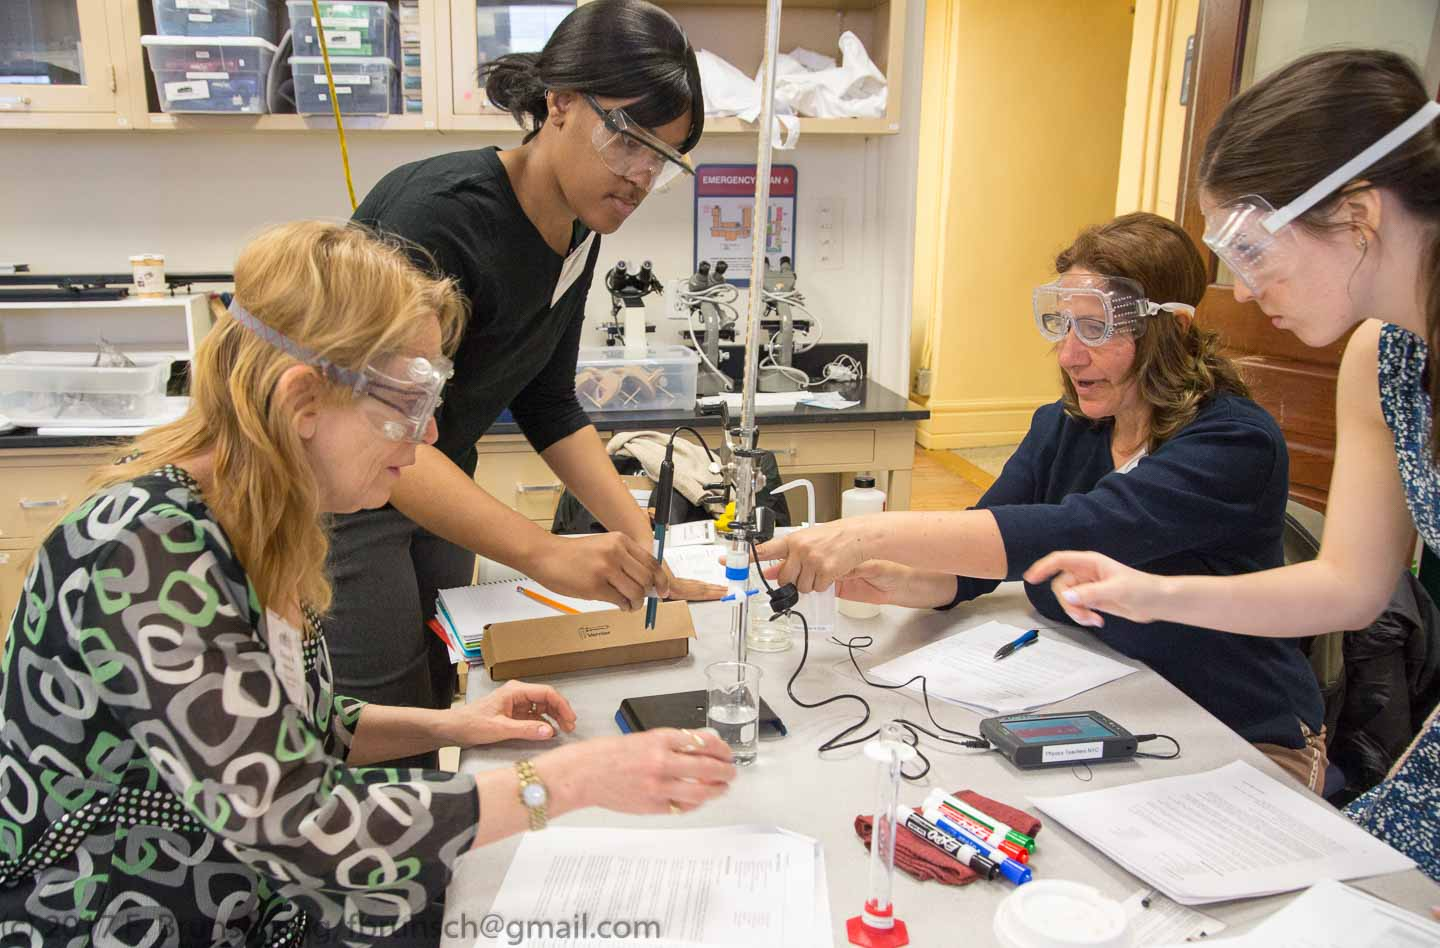 From Atoms to Ions: Cultivating Evidence-Based Thinking in the STEM Classroom